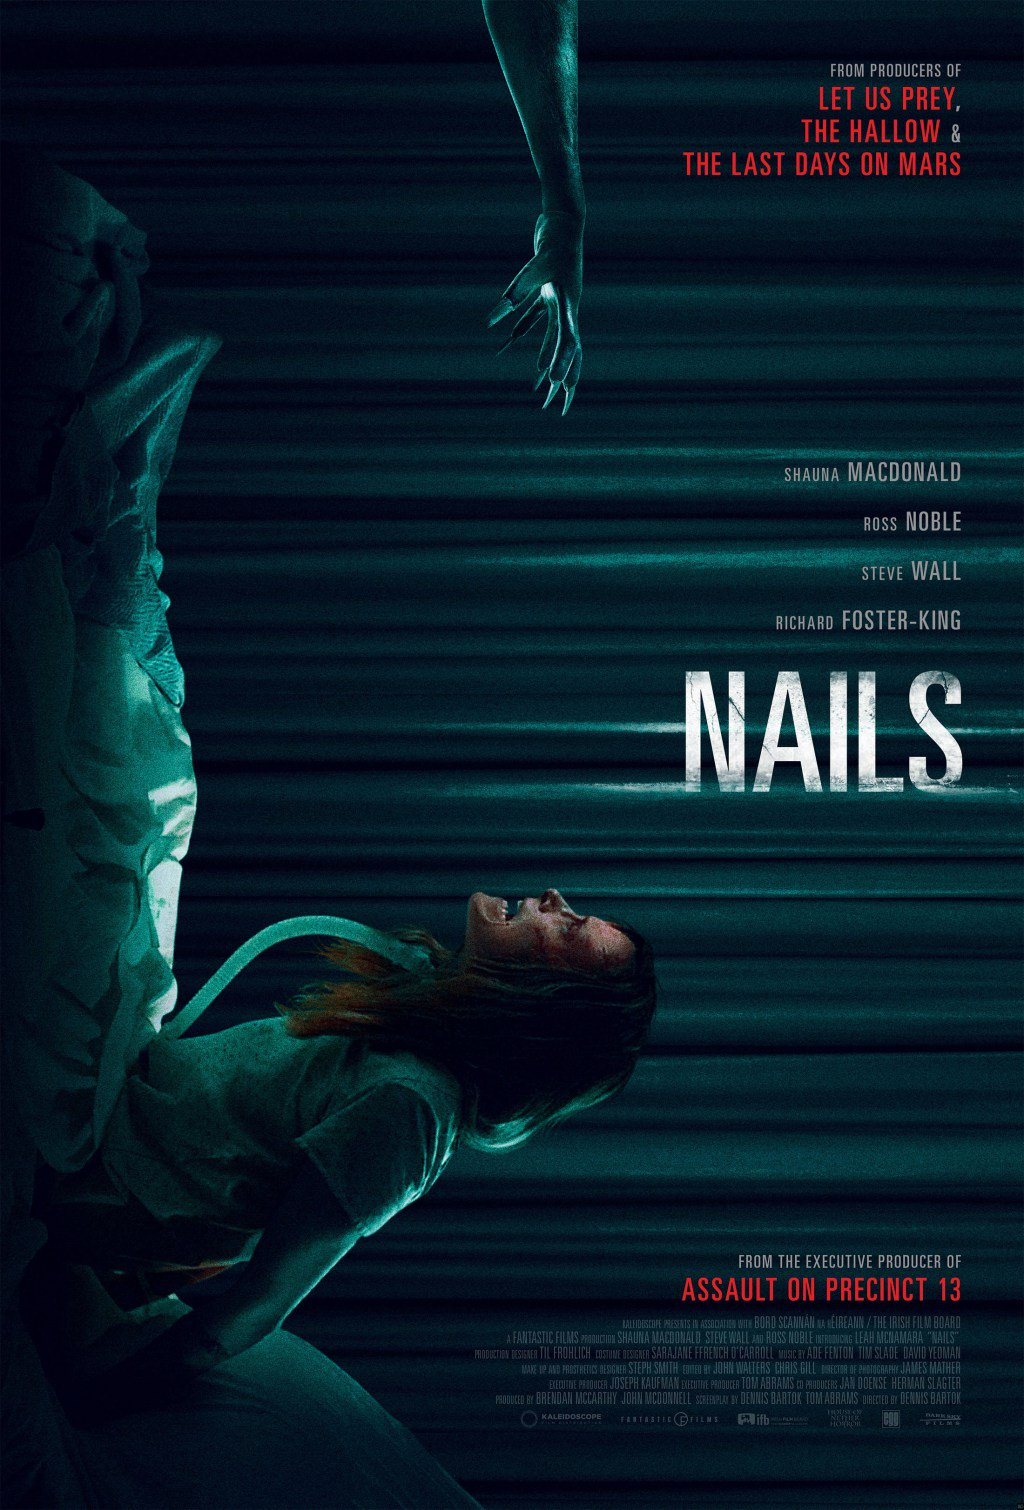 'Nails' Creeps Into a Hospital Room In This Exclusive Clip https://t.co/uNGbjn2hFf https://t.co/Urw3QJdEWc